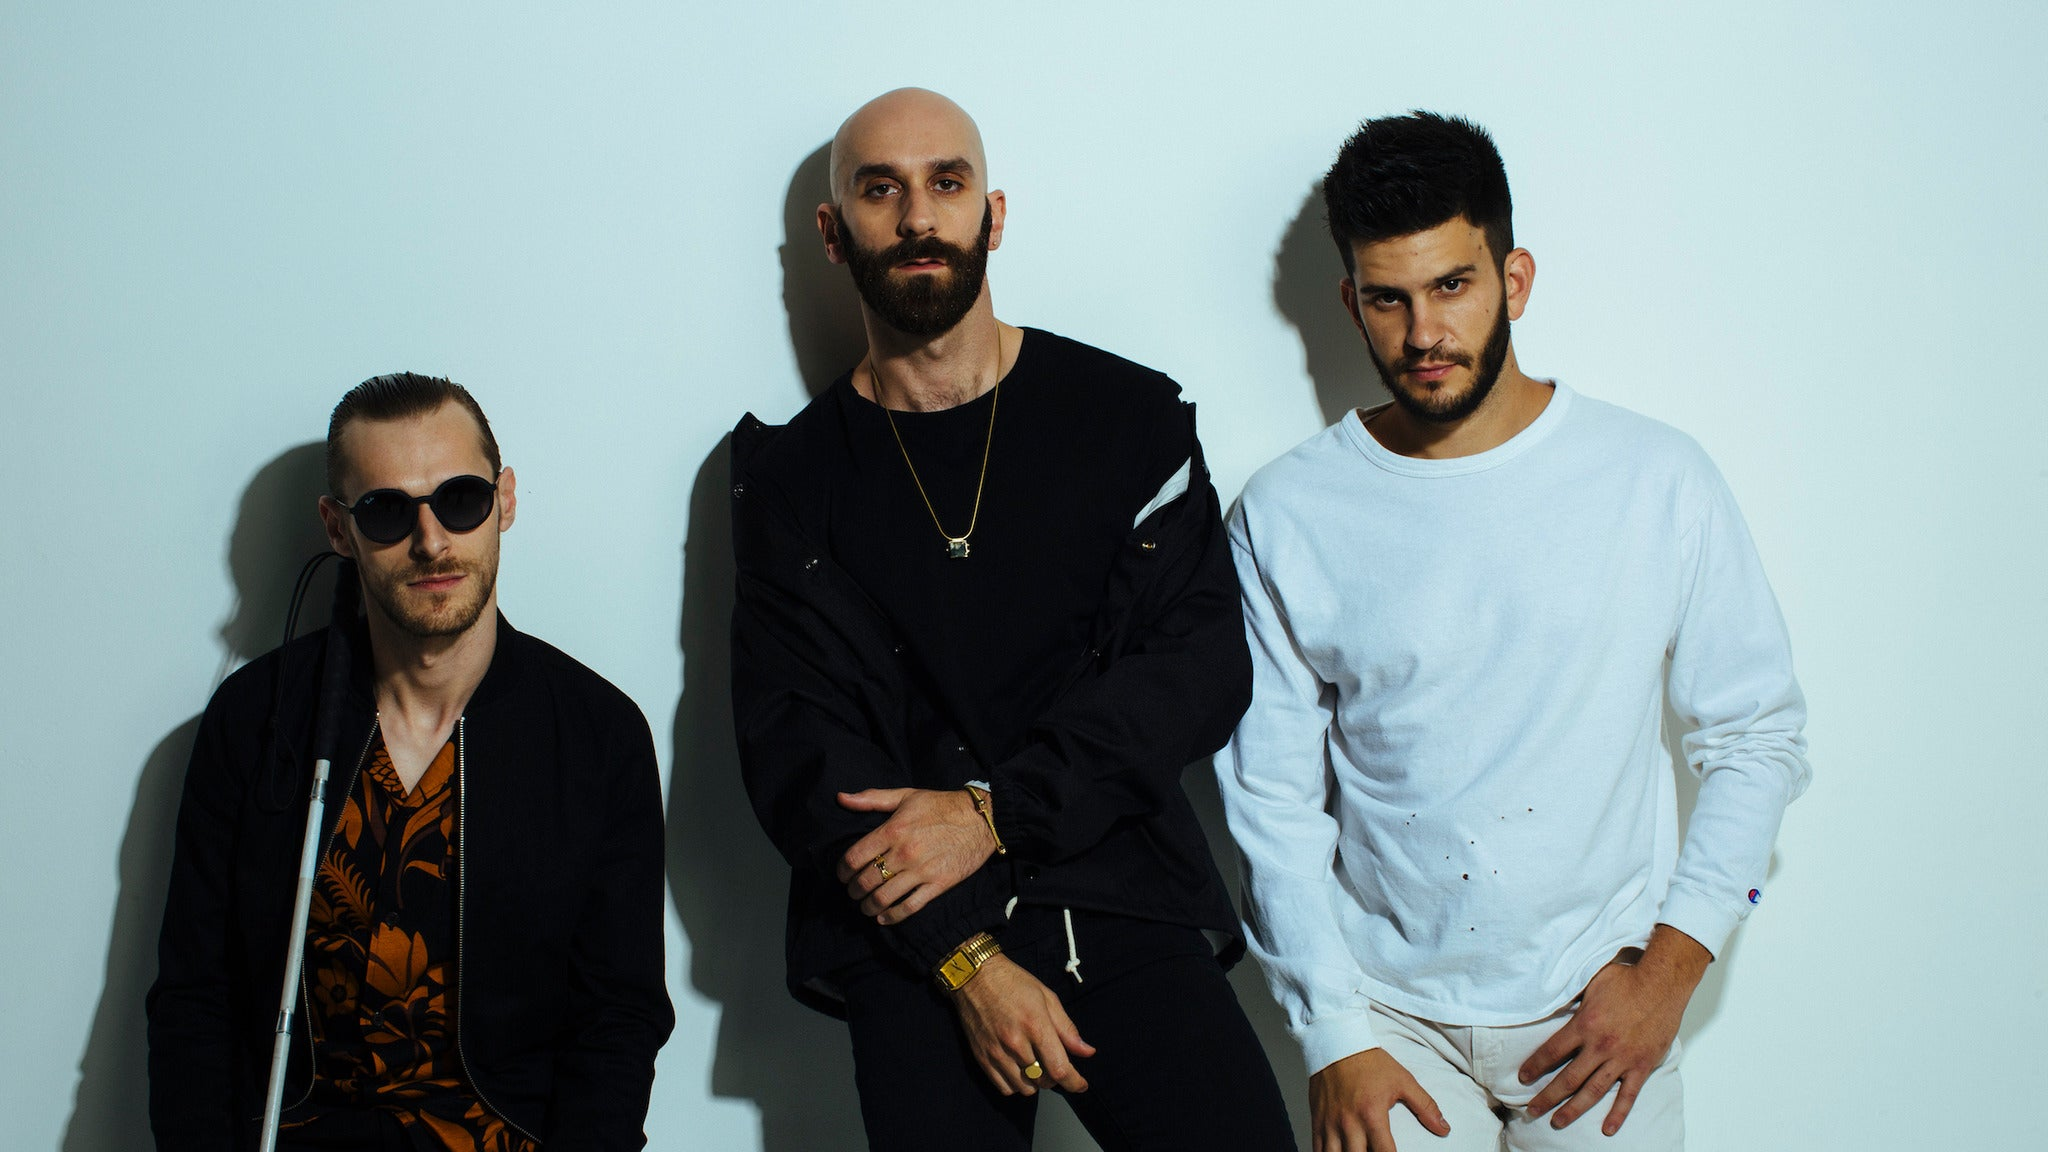 105.7 The Point Welcomes: X Ambassadors at The Pageant